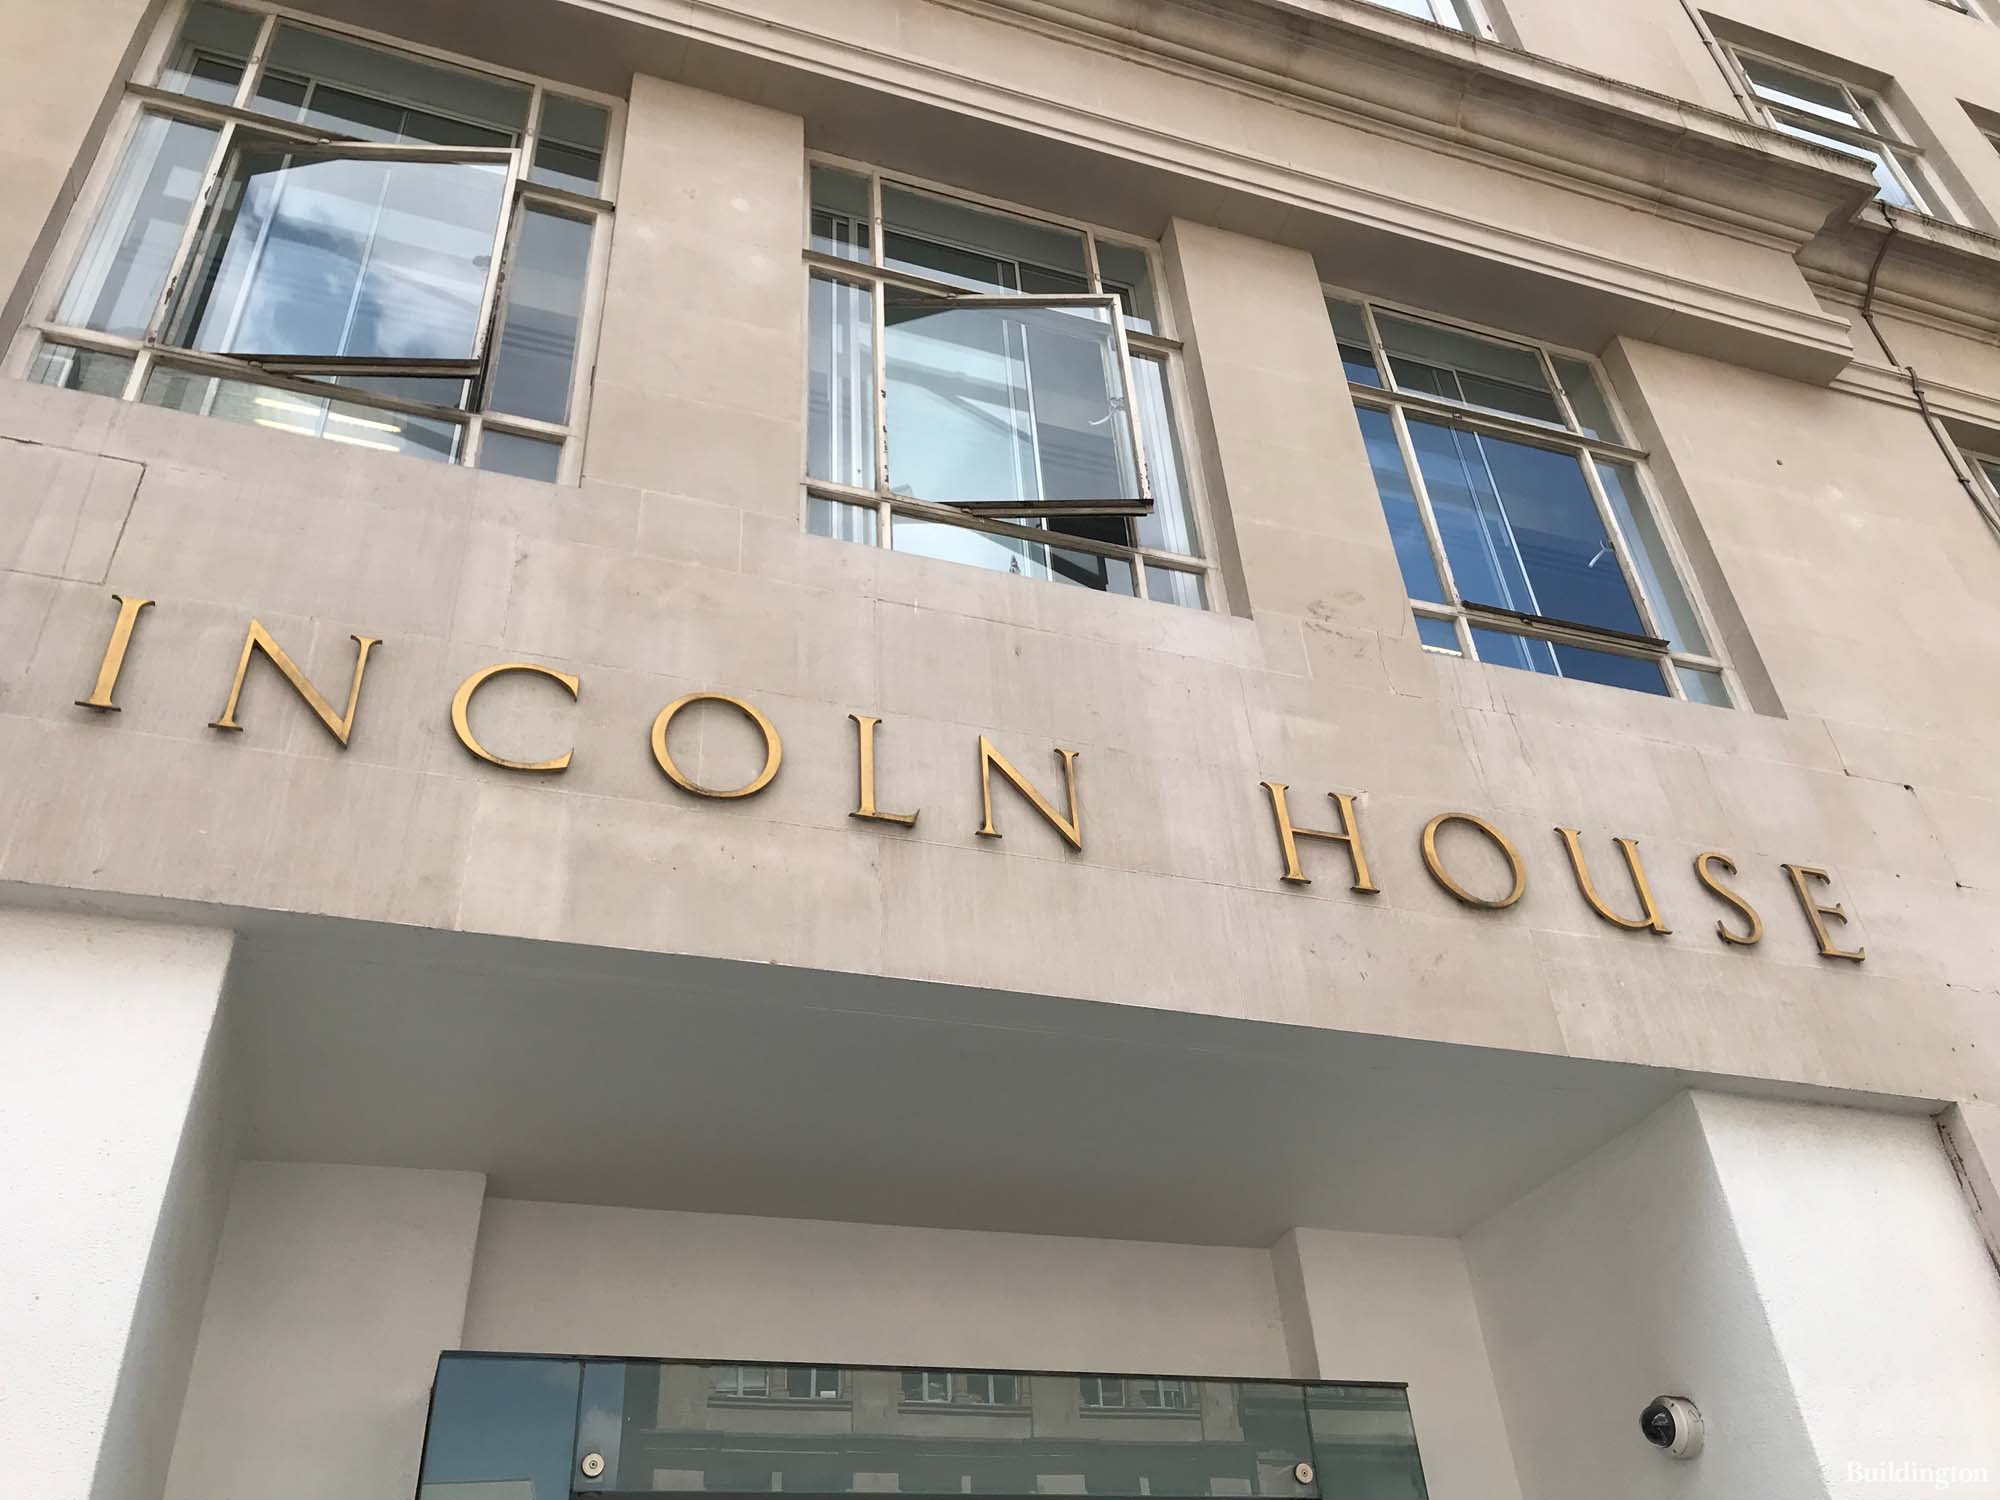 Lincoln House signage above the entrance on High Holborn, London WC1.